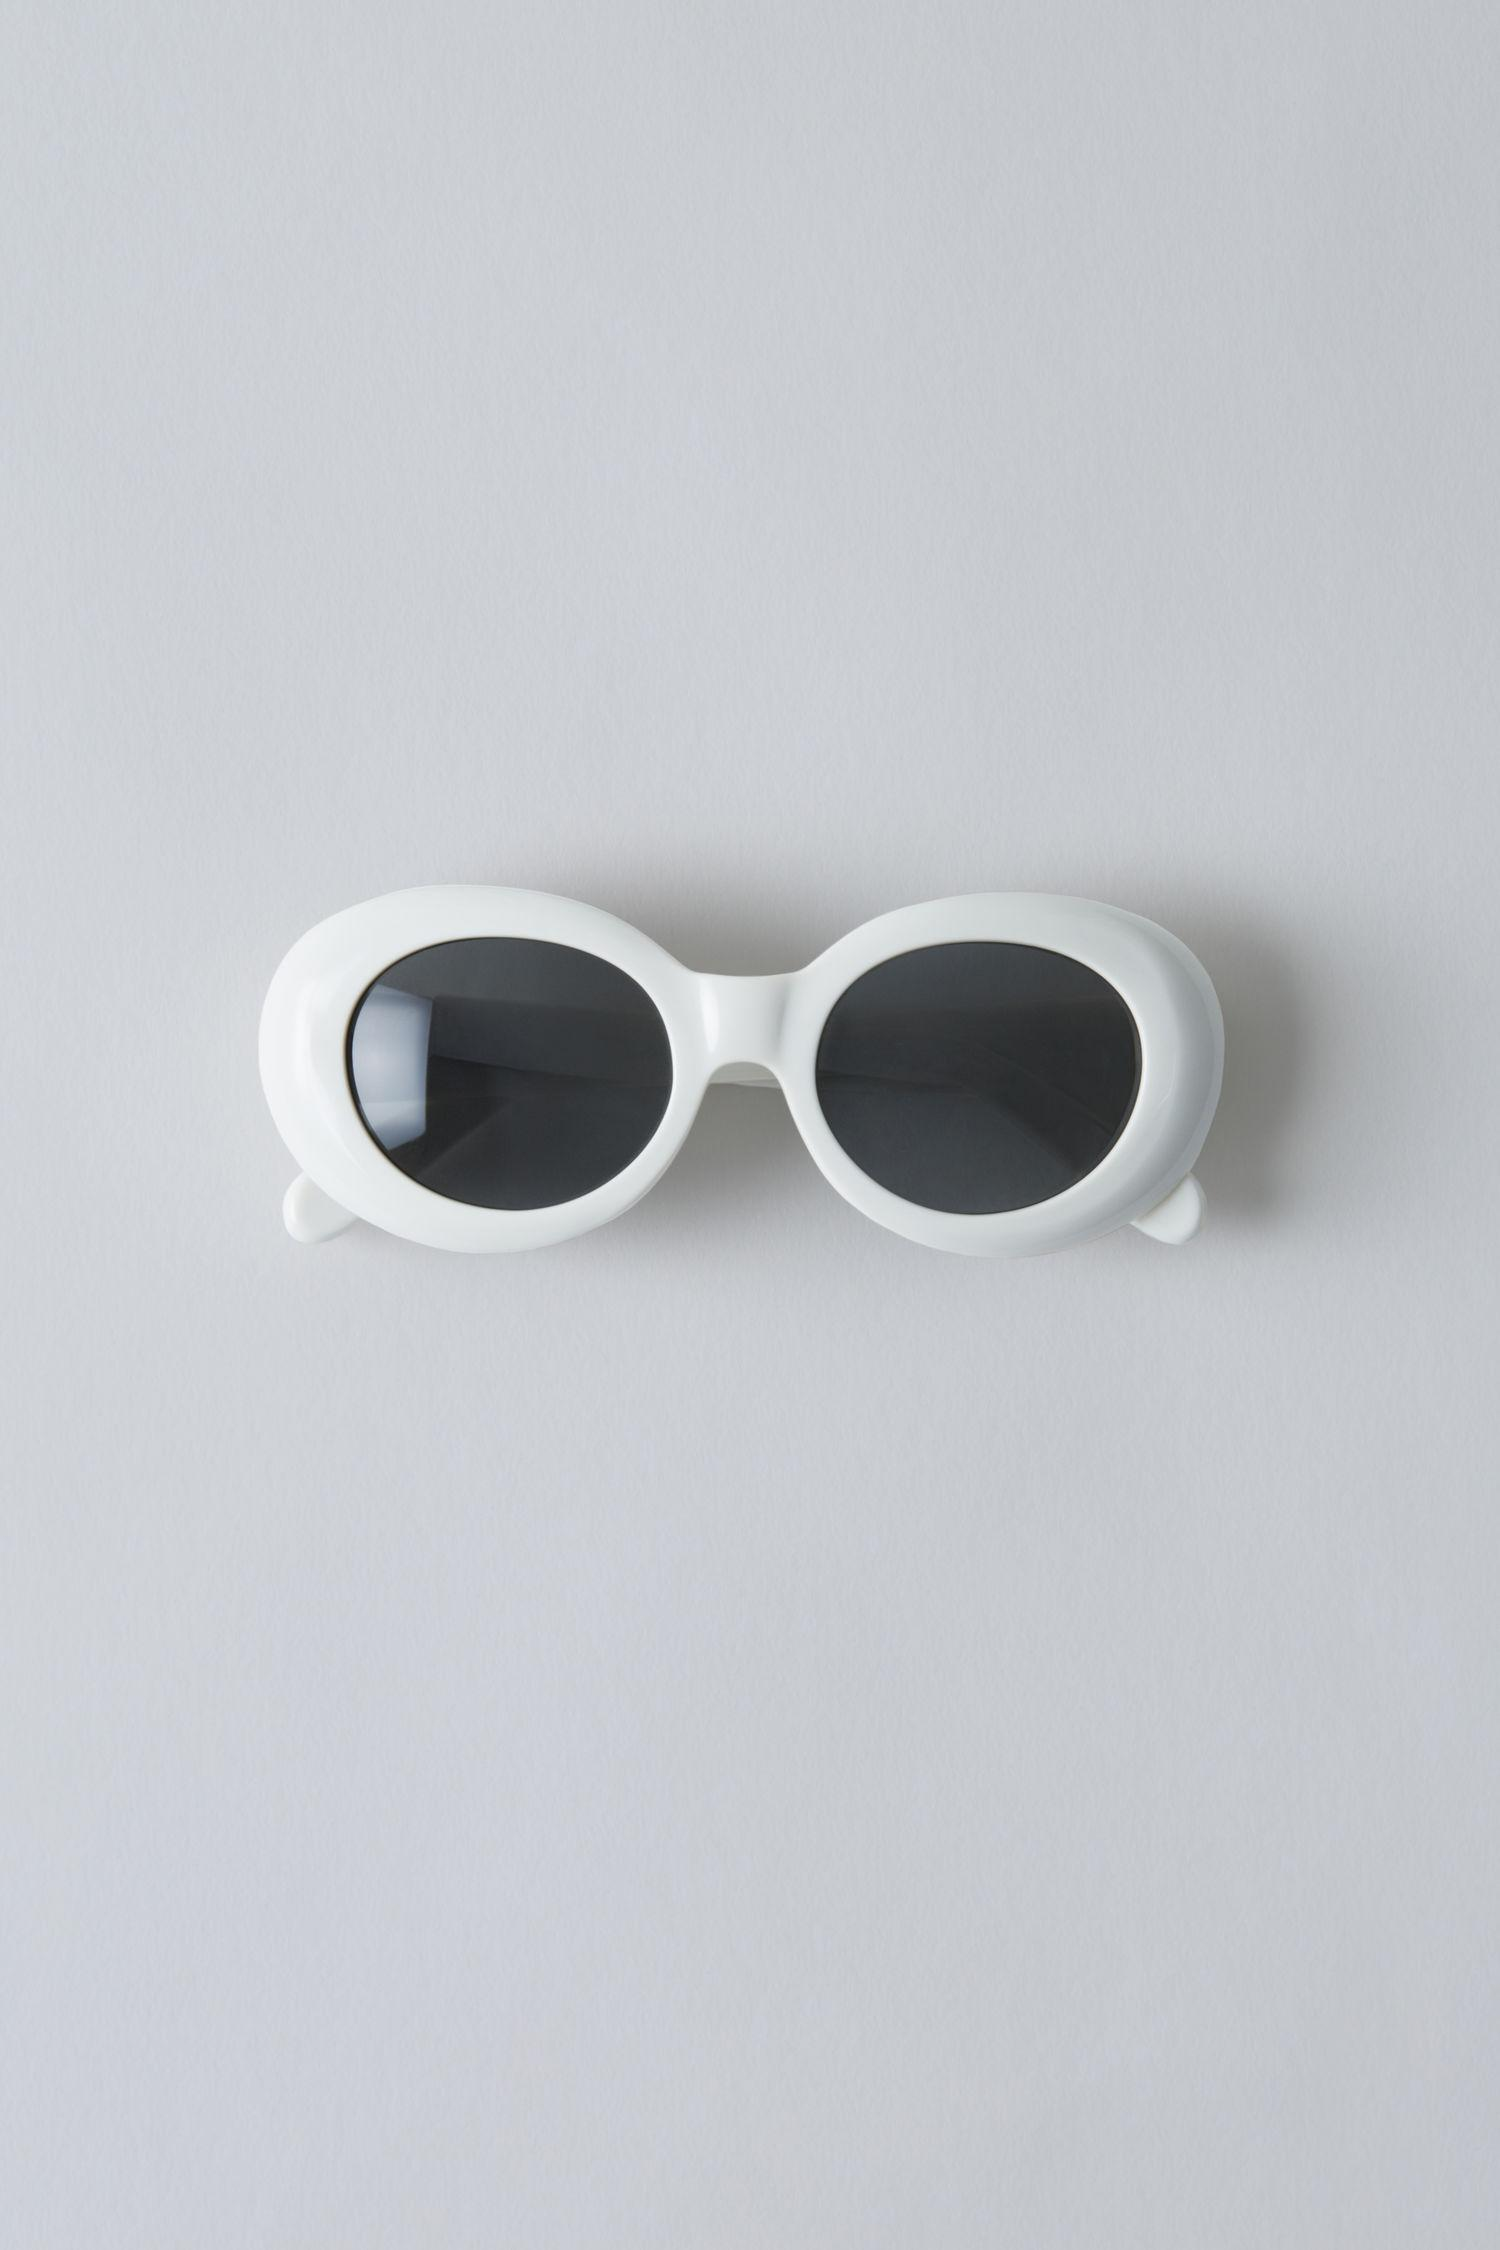 Acne Studios Mustang Oval Acetate Sunglasses In Off White/b